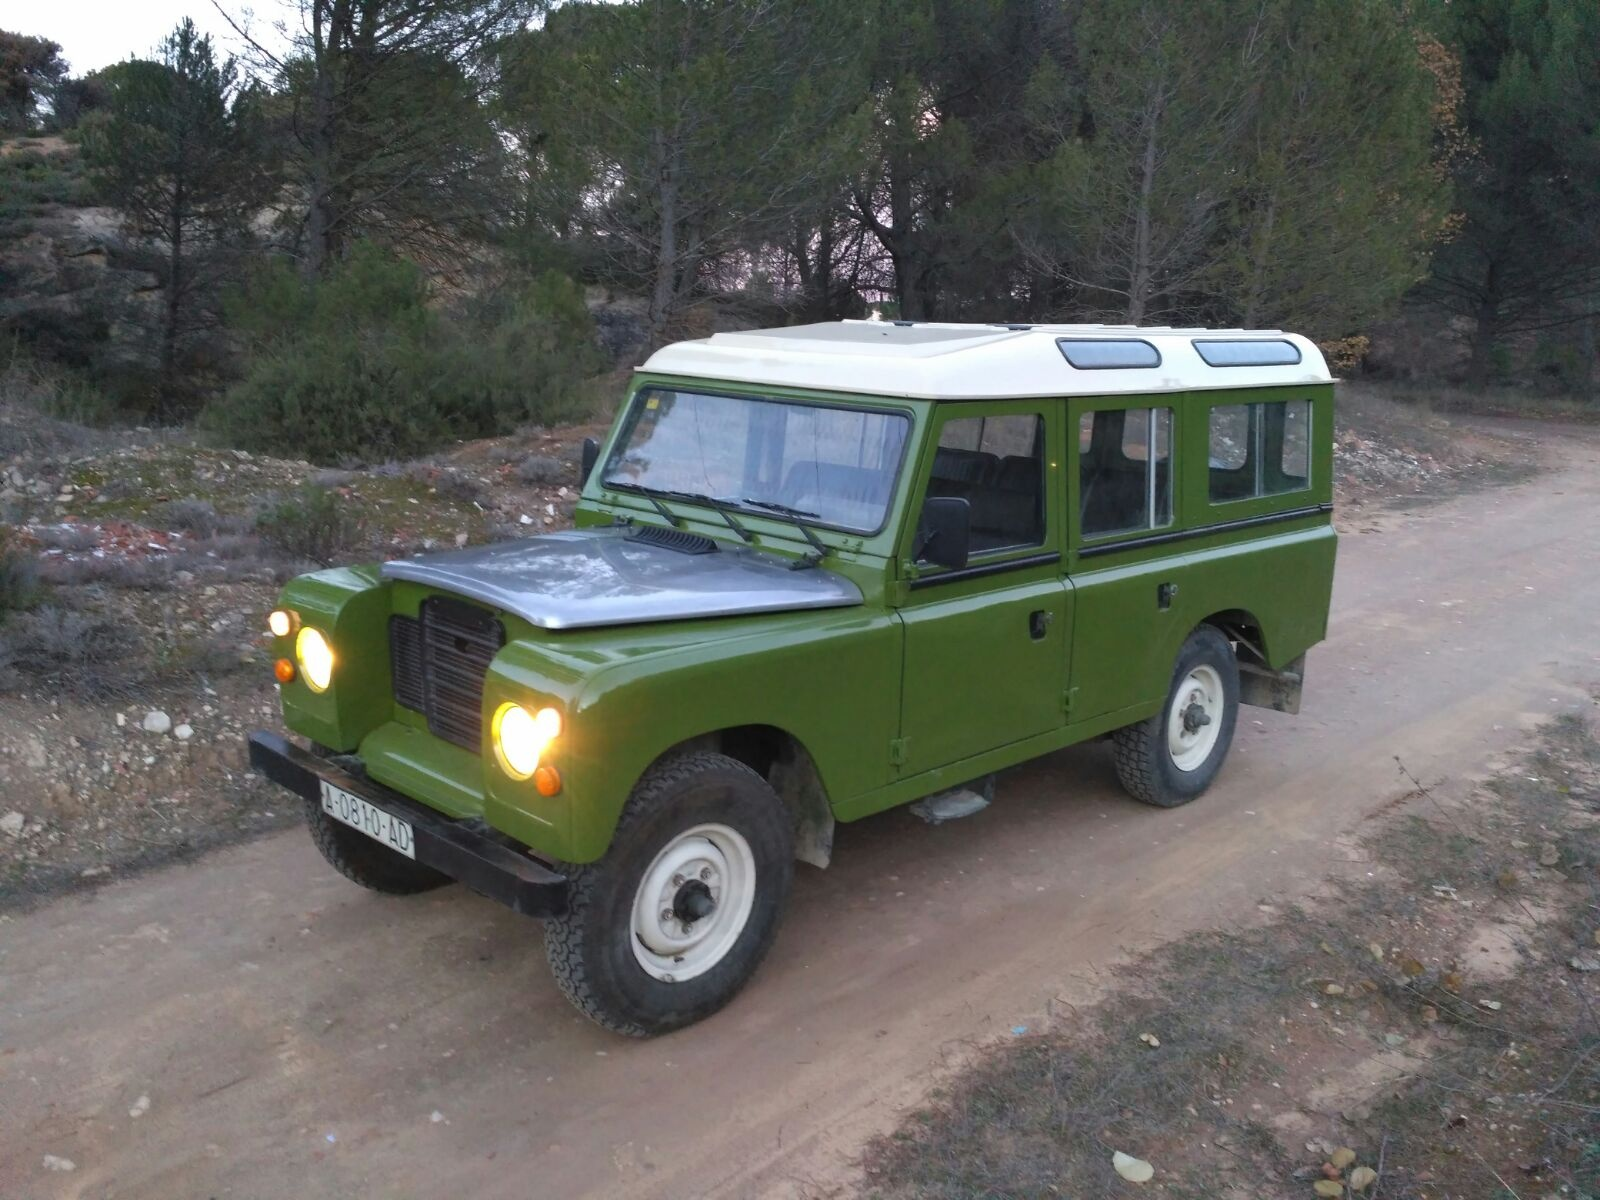 1980 Land Rover Series III - Overview - CarGurus